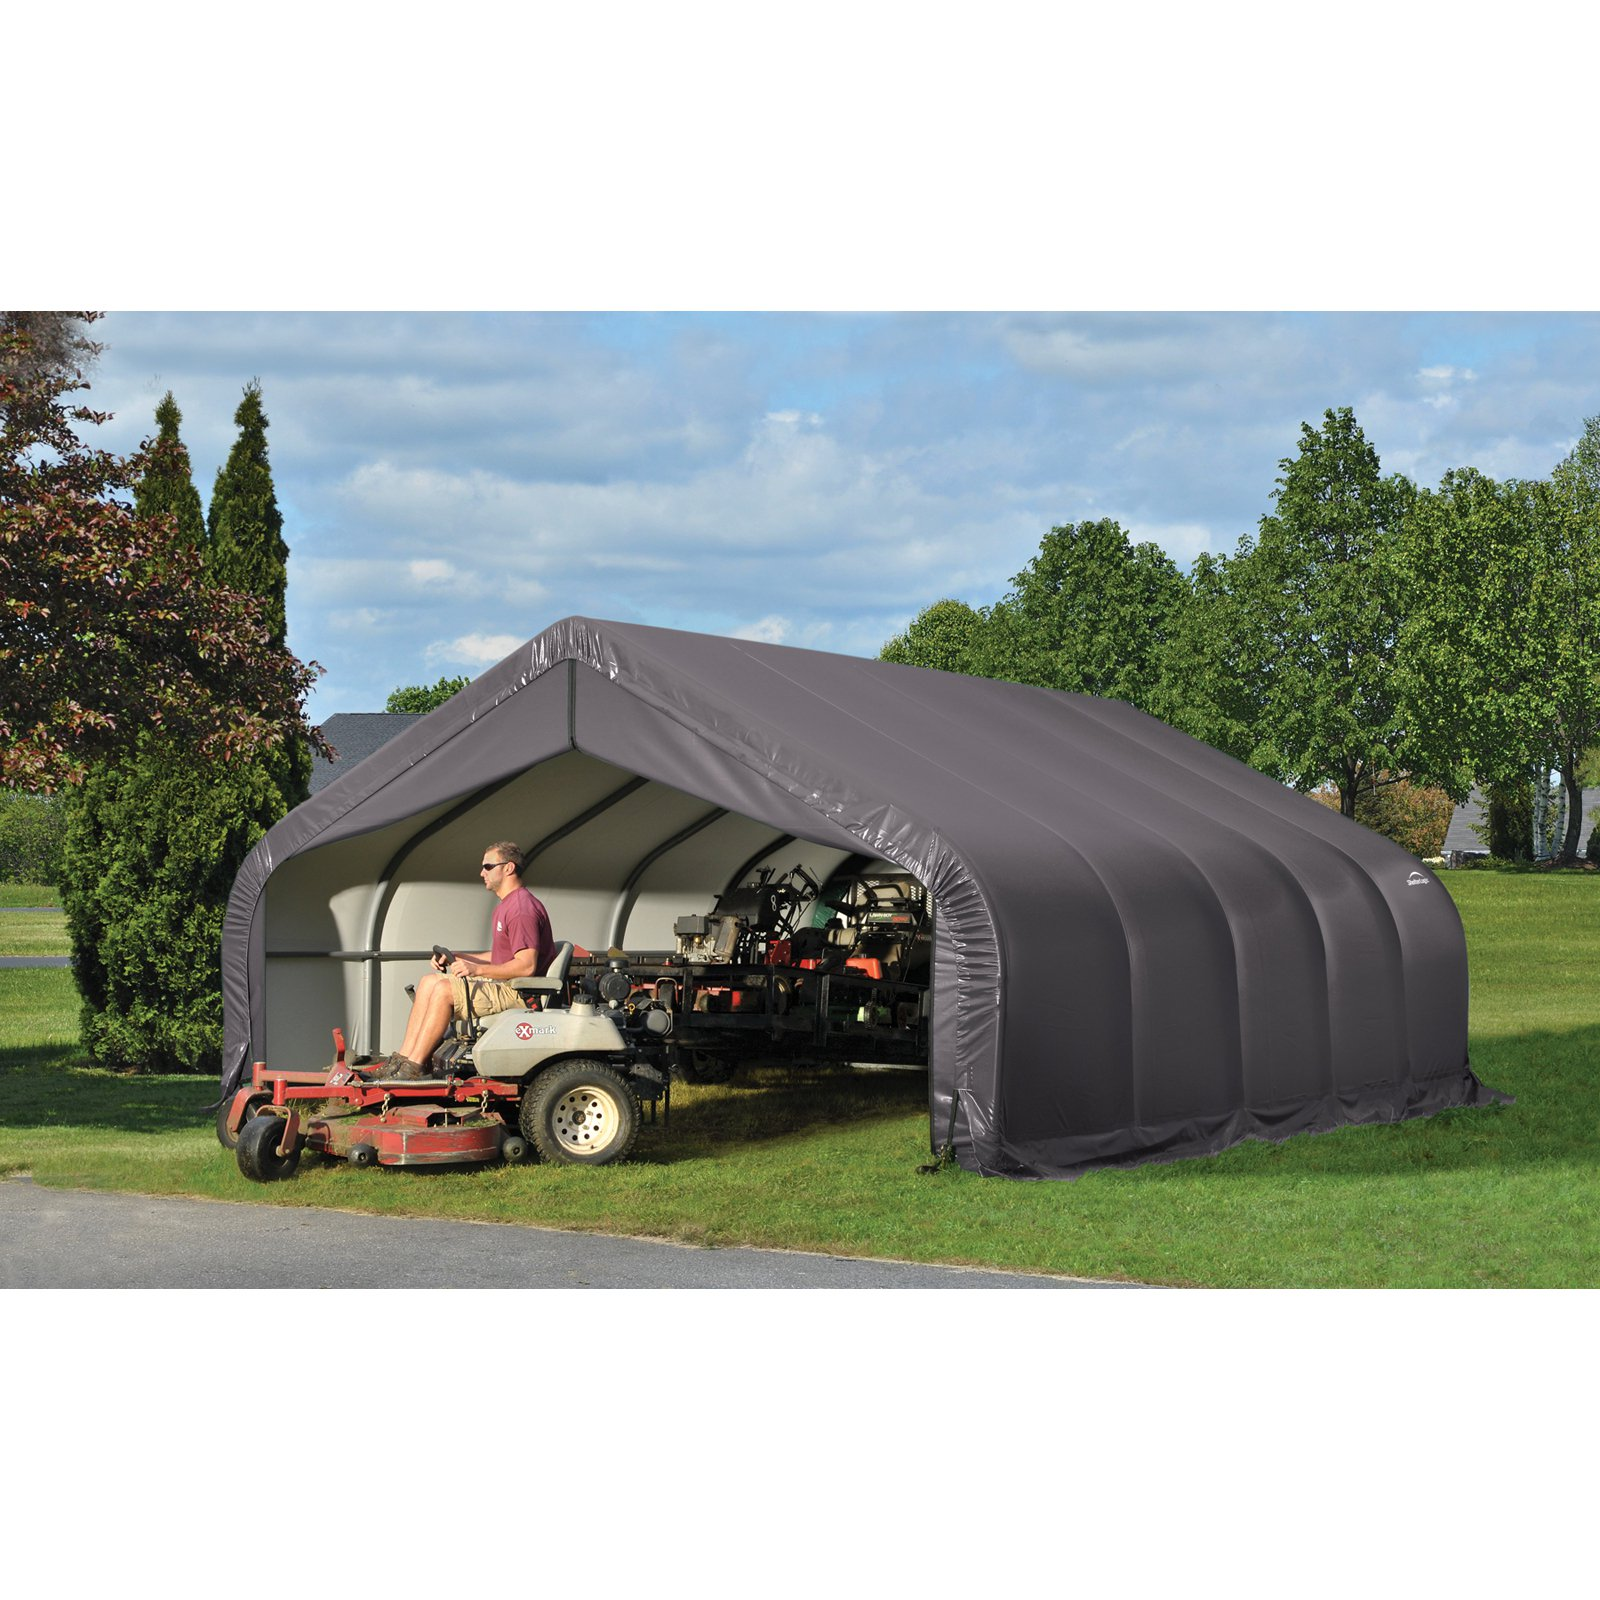 ShelterLogic 18' x 24' x 9' Peak Style Shelter, Green